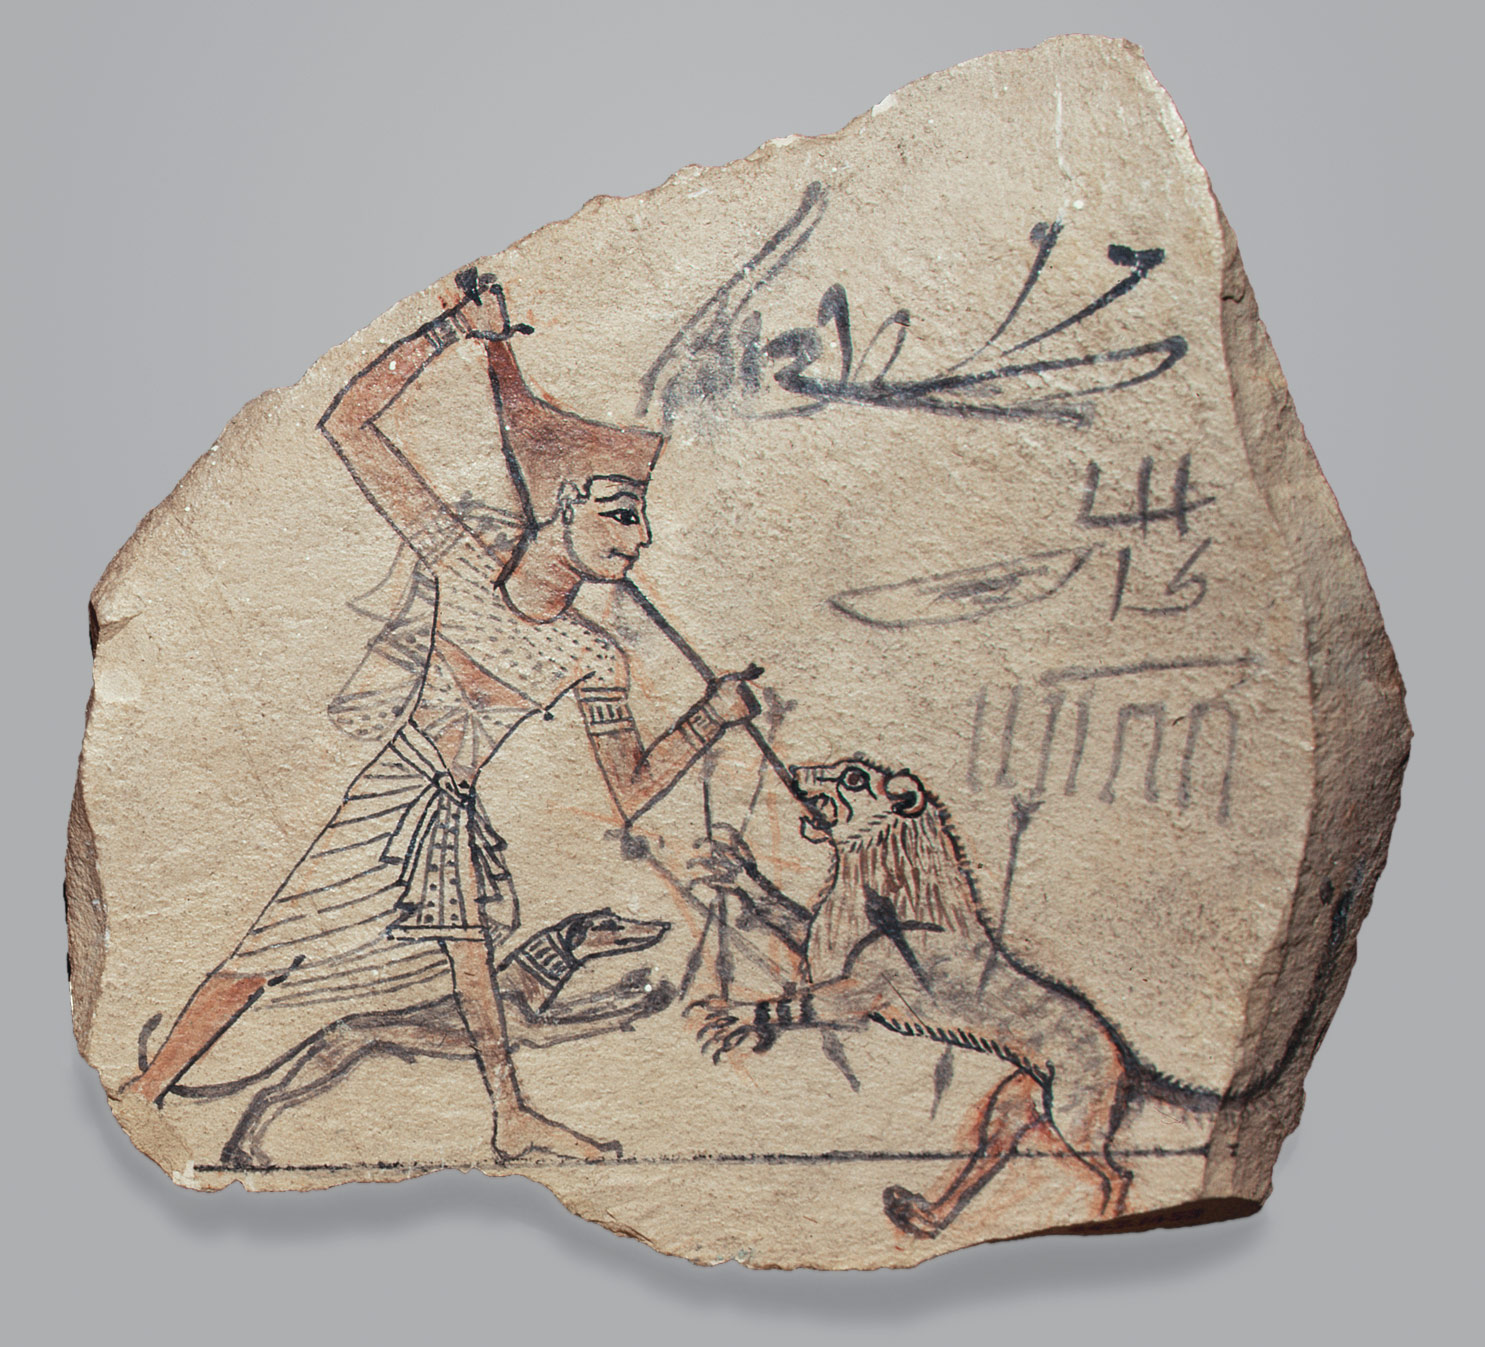 Artists Sketch of Pharaoh Spearing a Lion